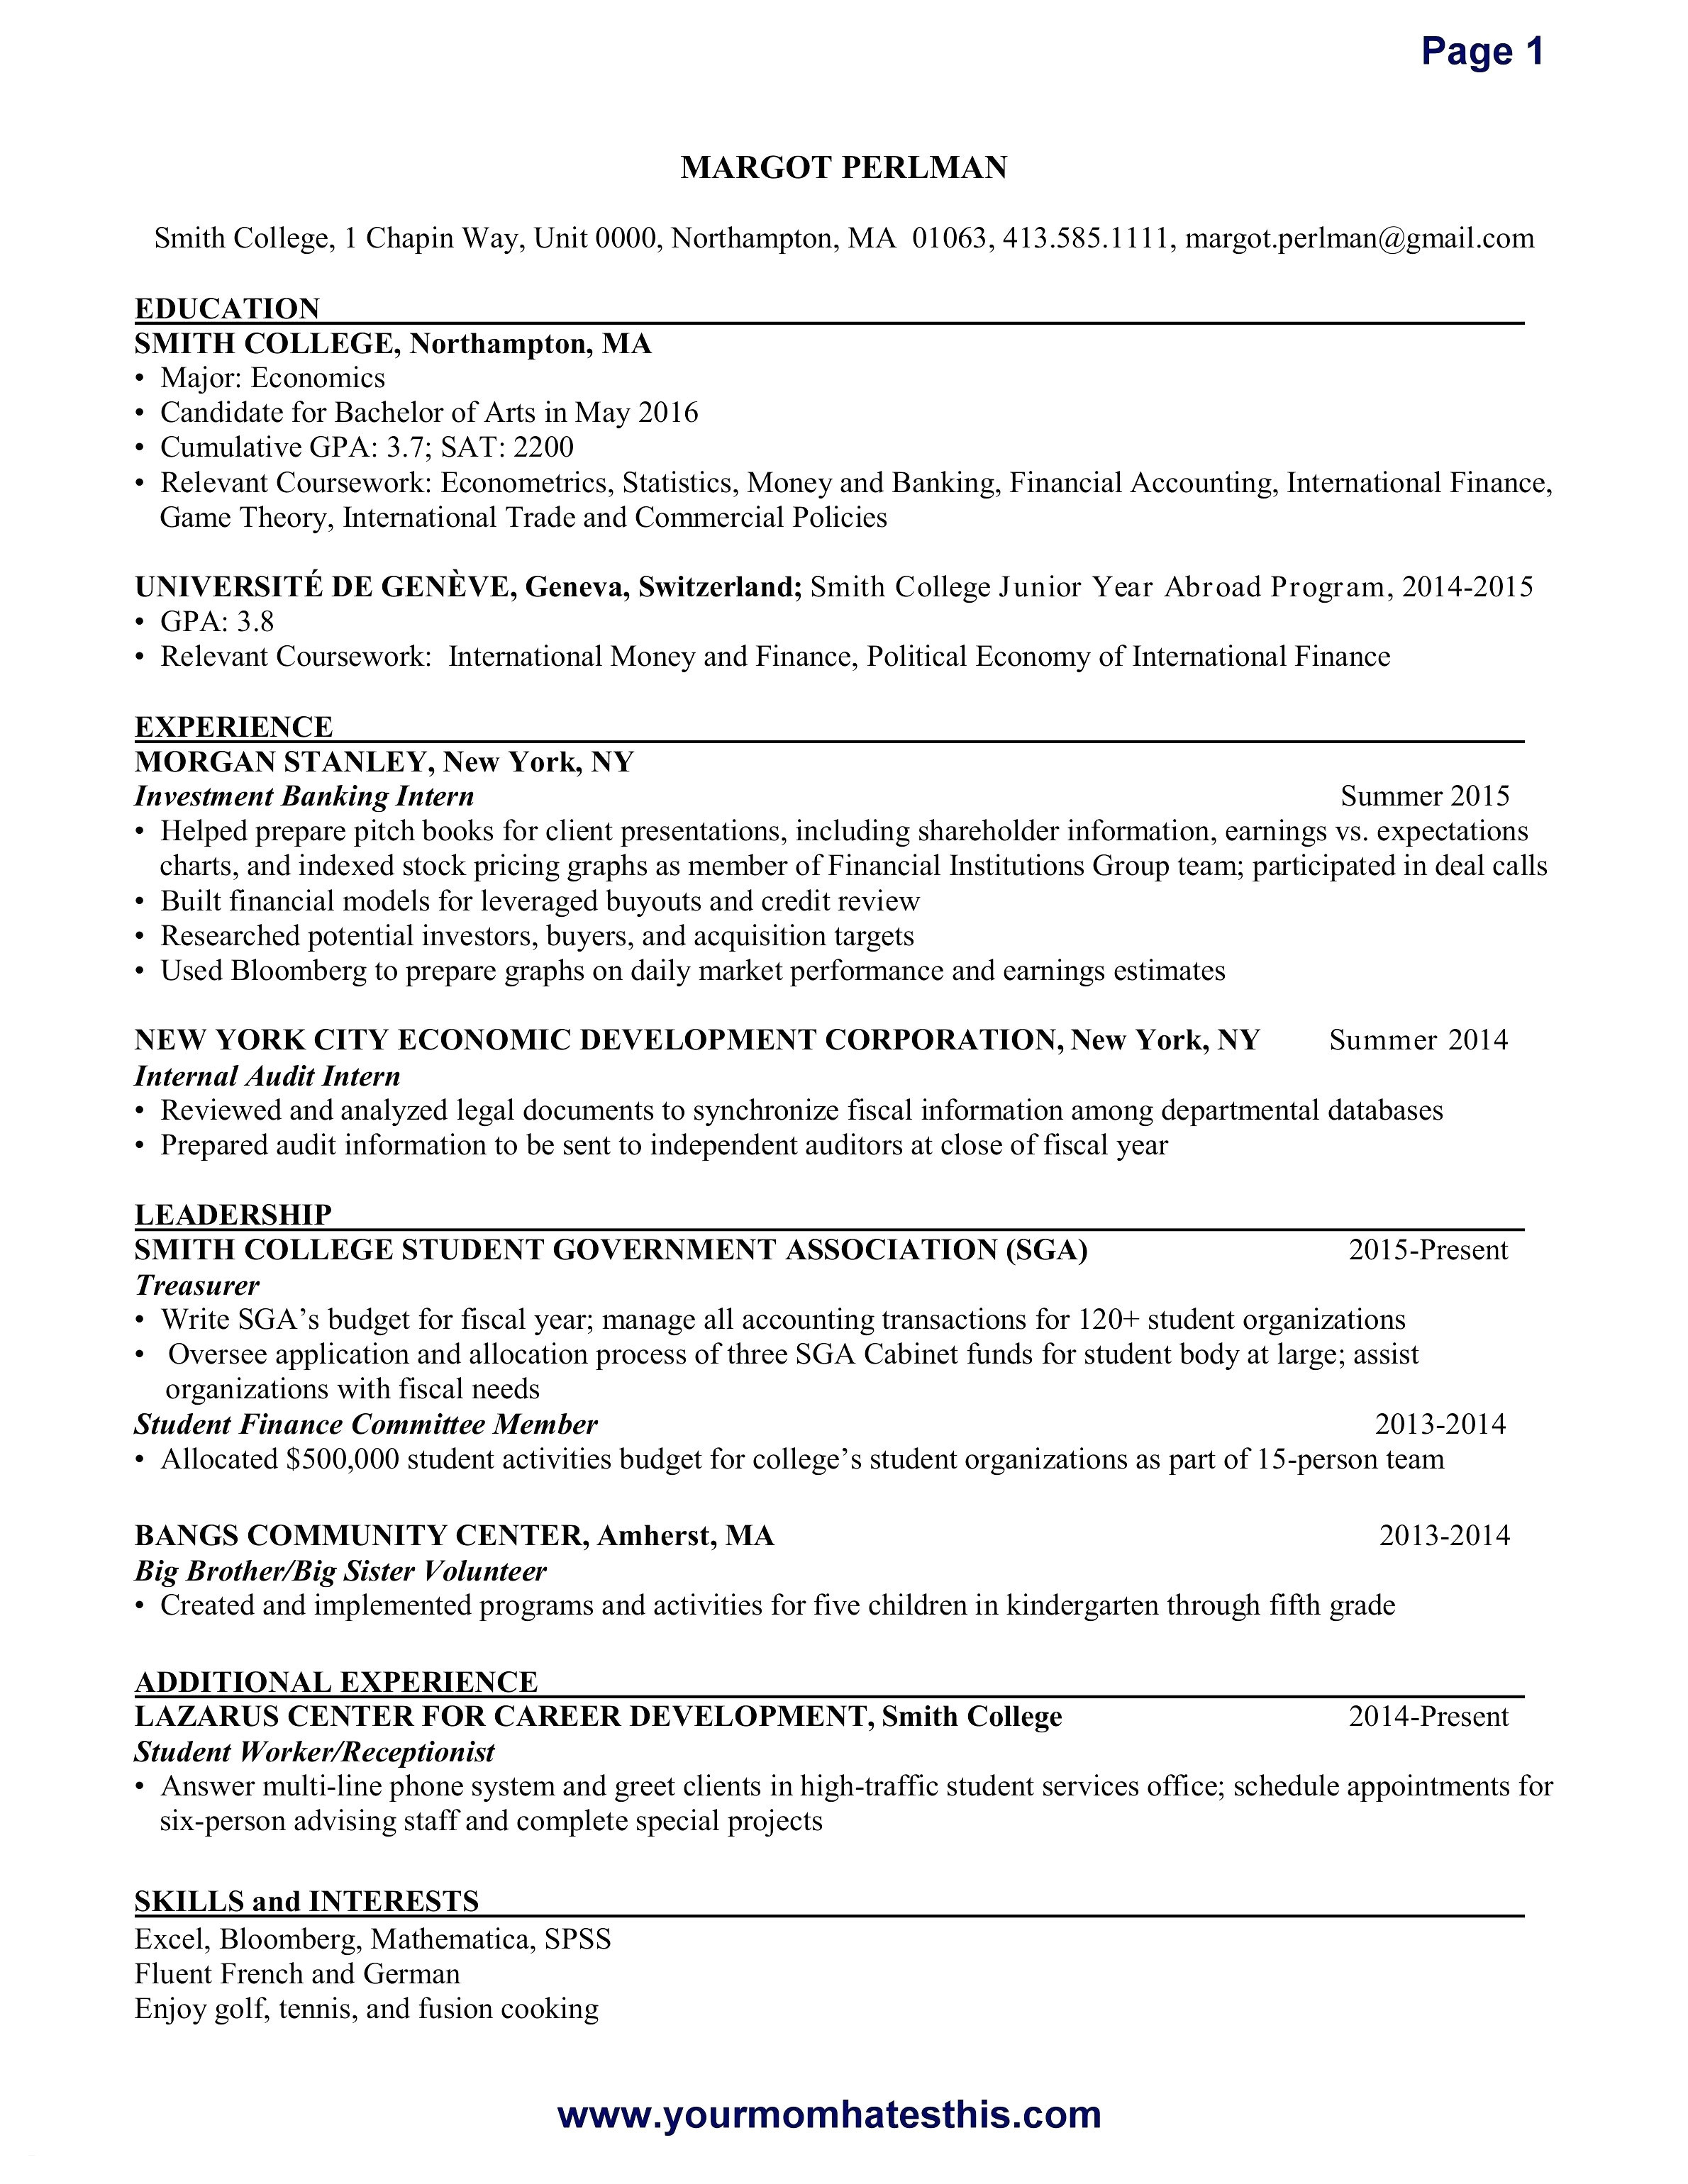 Internal Resume Sample - Awesome Security Ficer Resume Sample